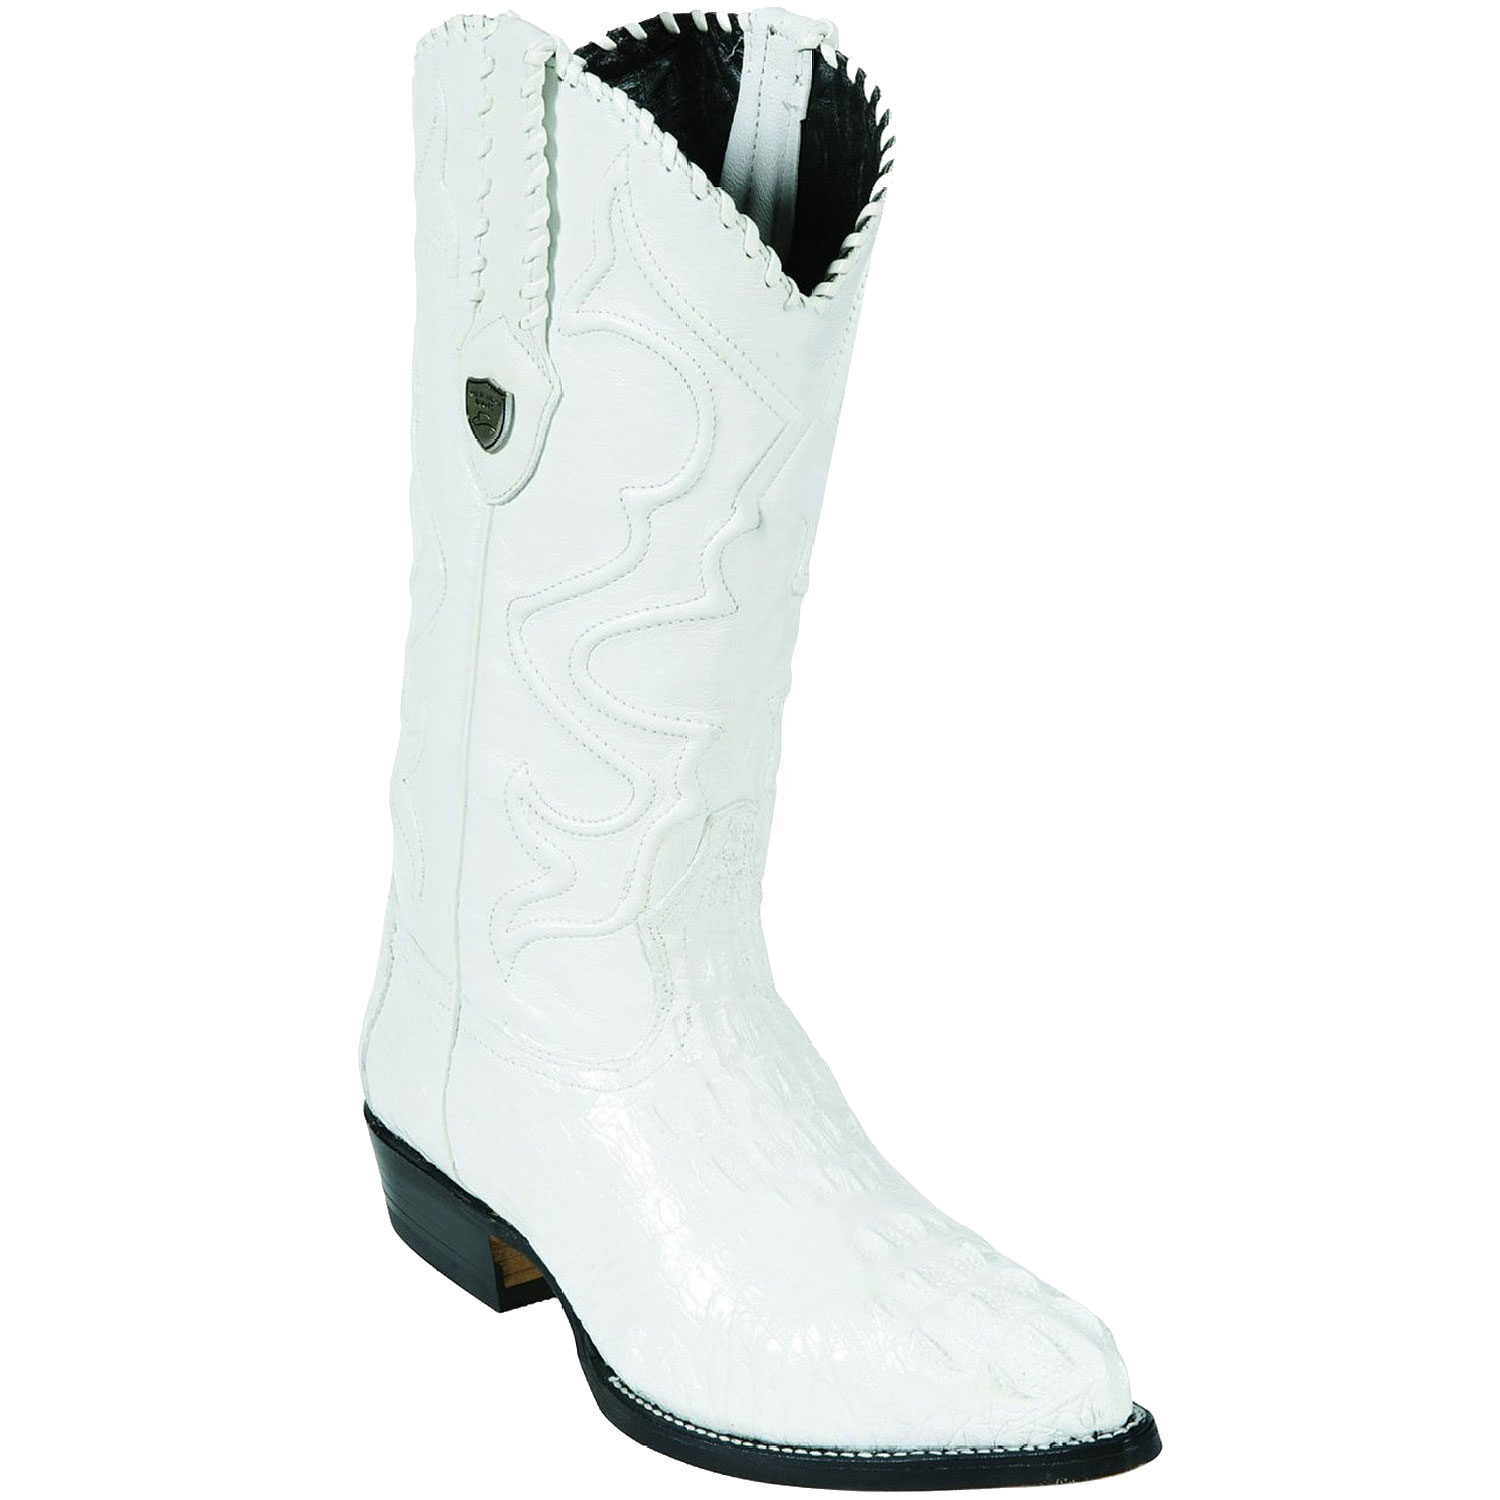 West J-Toe White caiman